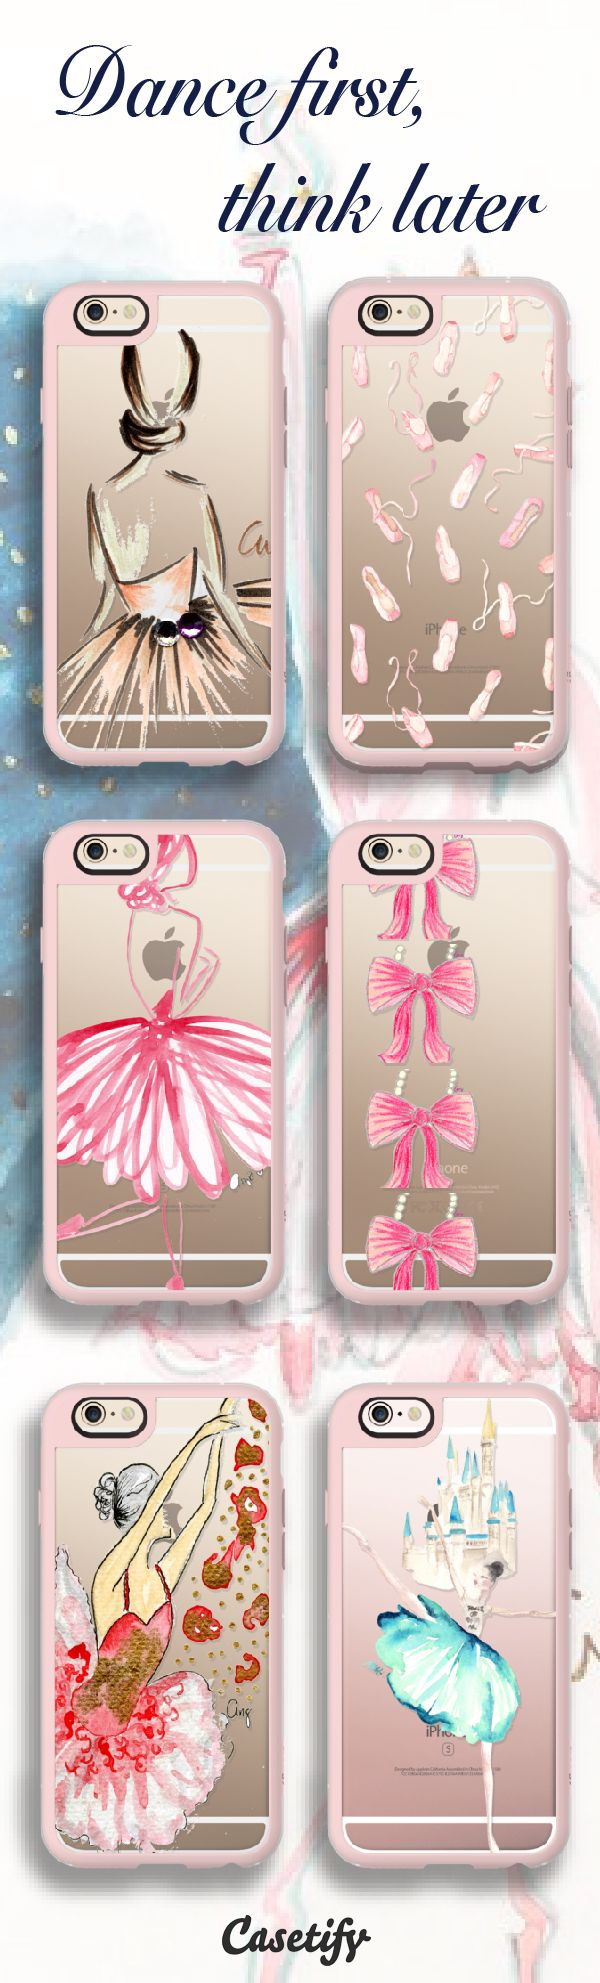 Dance your heart out. Shop these #ballet dancer cases here: https://www.casetify.com/artworks/a4kEQLtfHK